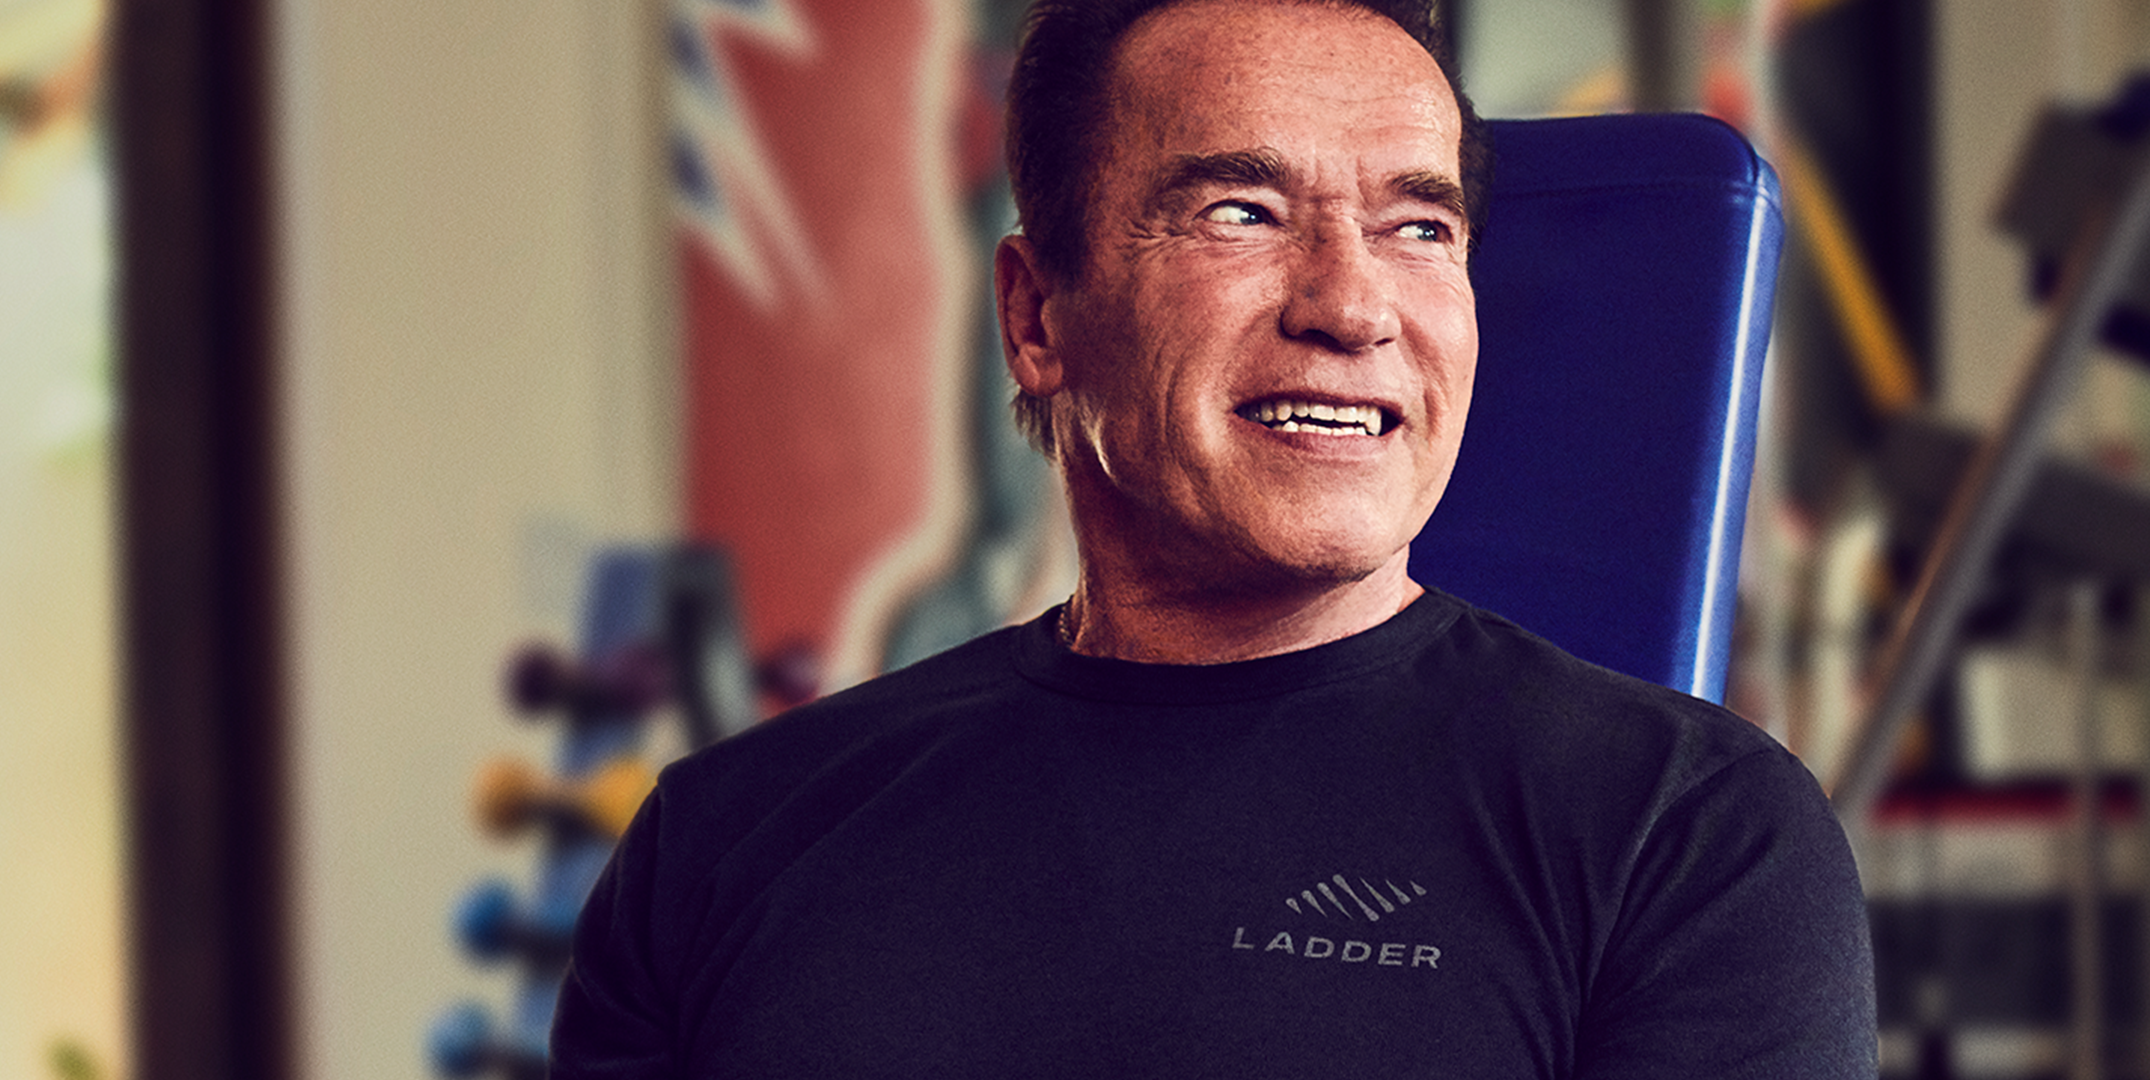 Video: Arnold Schwarzenegger Attacked During Sporting Event in South Africa